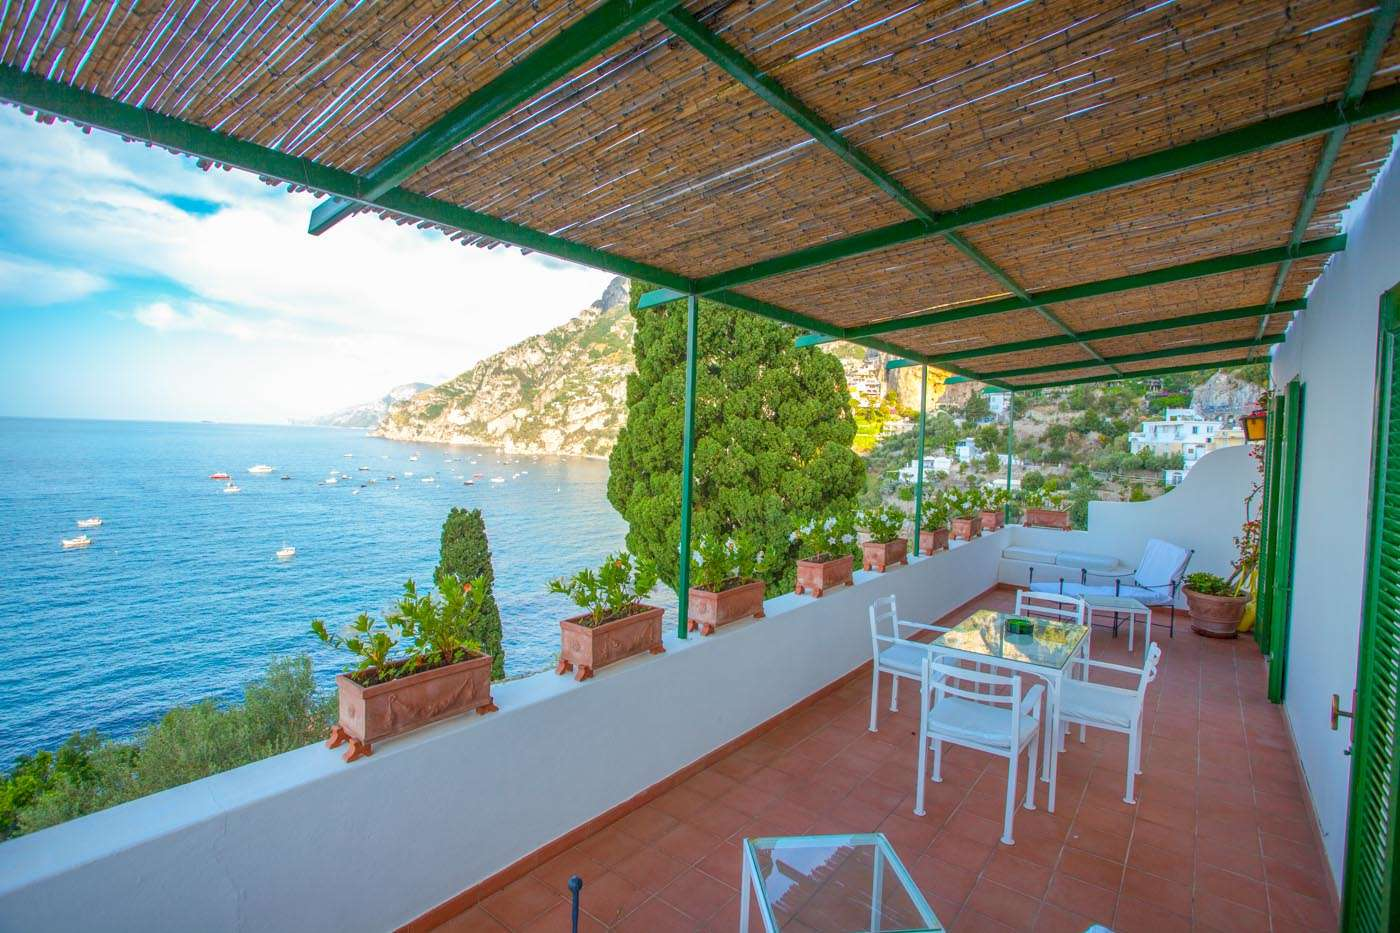 Luxury vacation rentals europe - Italy - Amalfi coast - Po sitano - Alta - Image 1/18